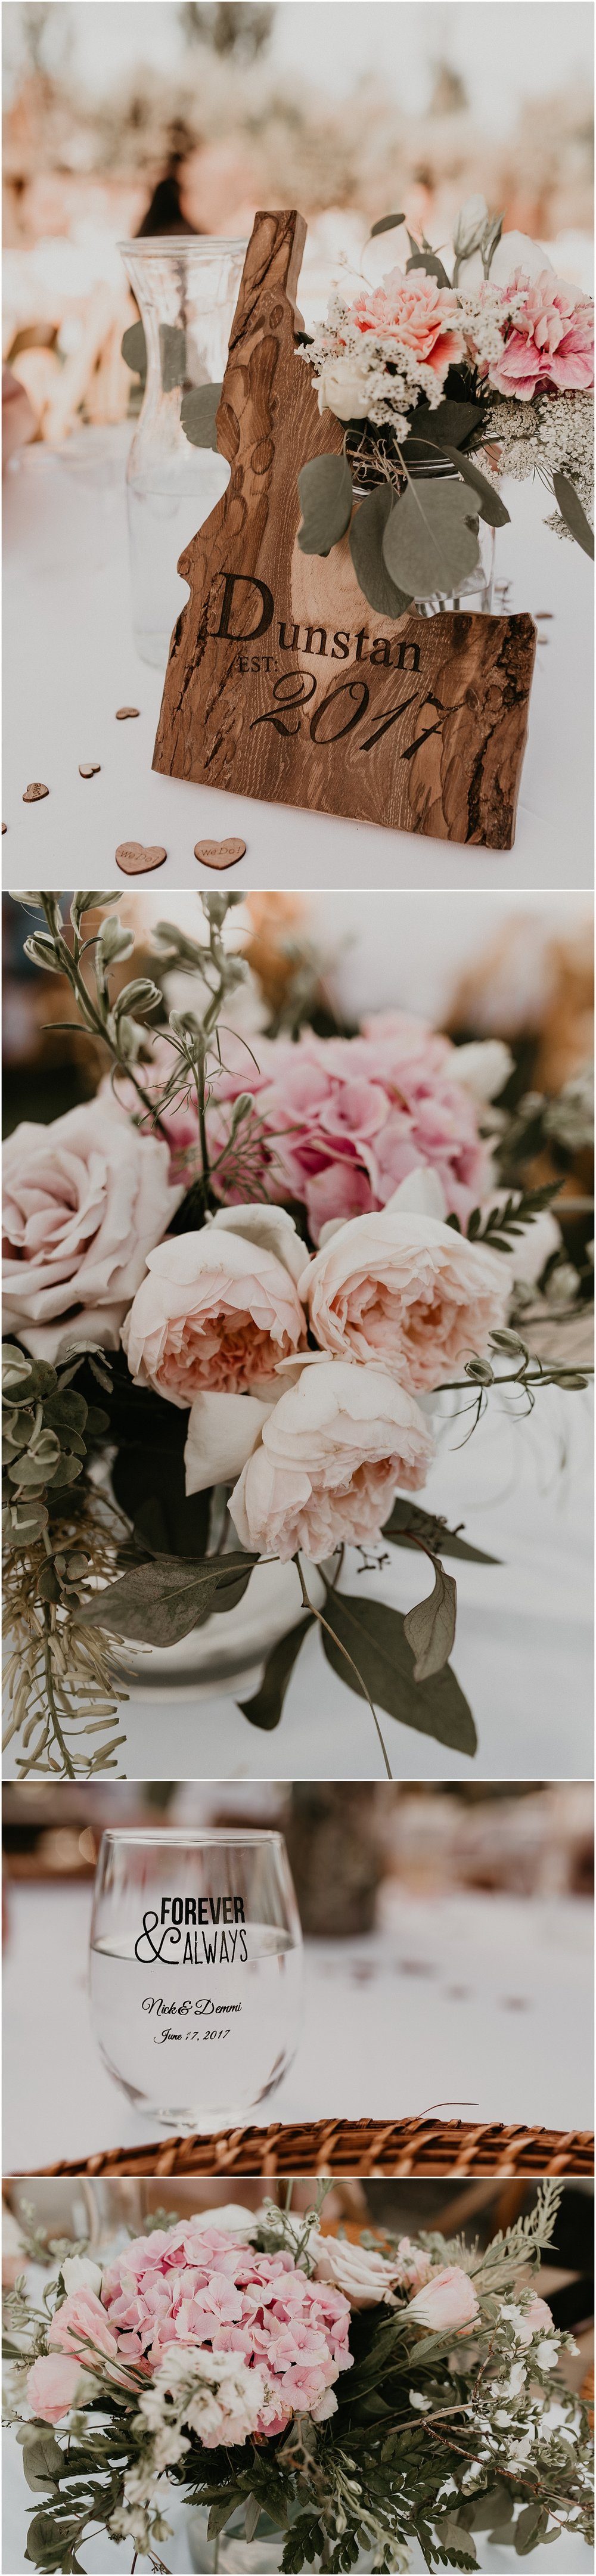 Boise Wedding Photographer Makayla Madden Photography Still Water Hollow Boise Wedding Venue Country Chic Rustic Ira Lucy Wedding Planning Events Design Idaho Wedding Ideas Decor Just So. Event Floral